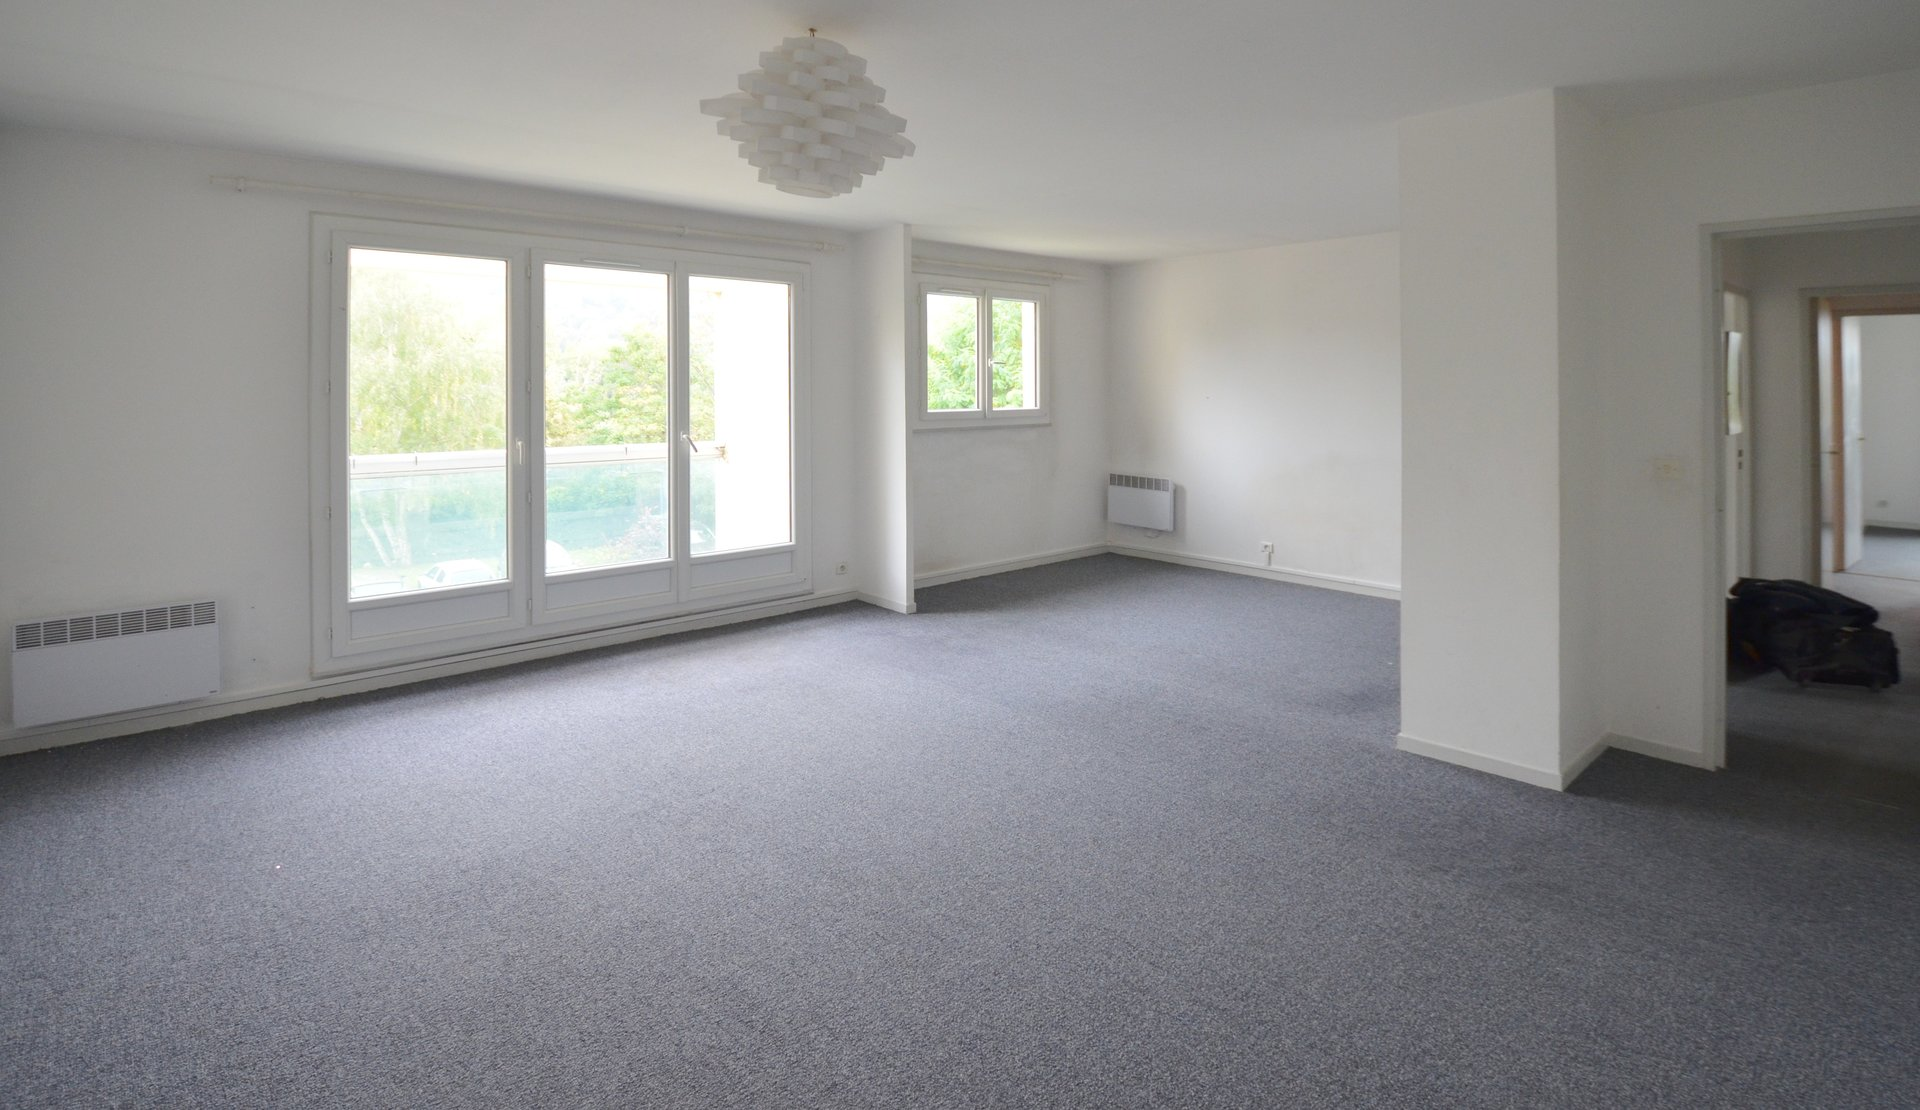 Appartement F3/4